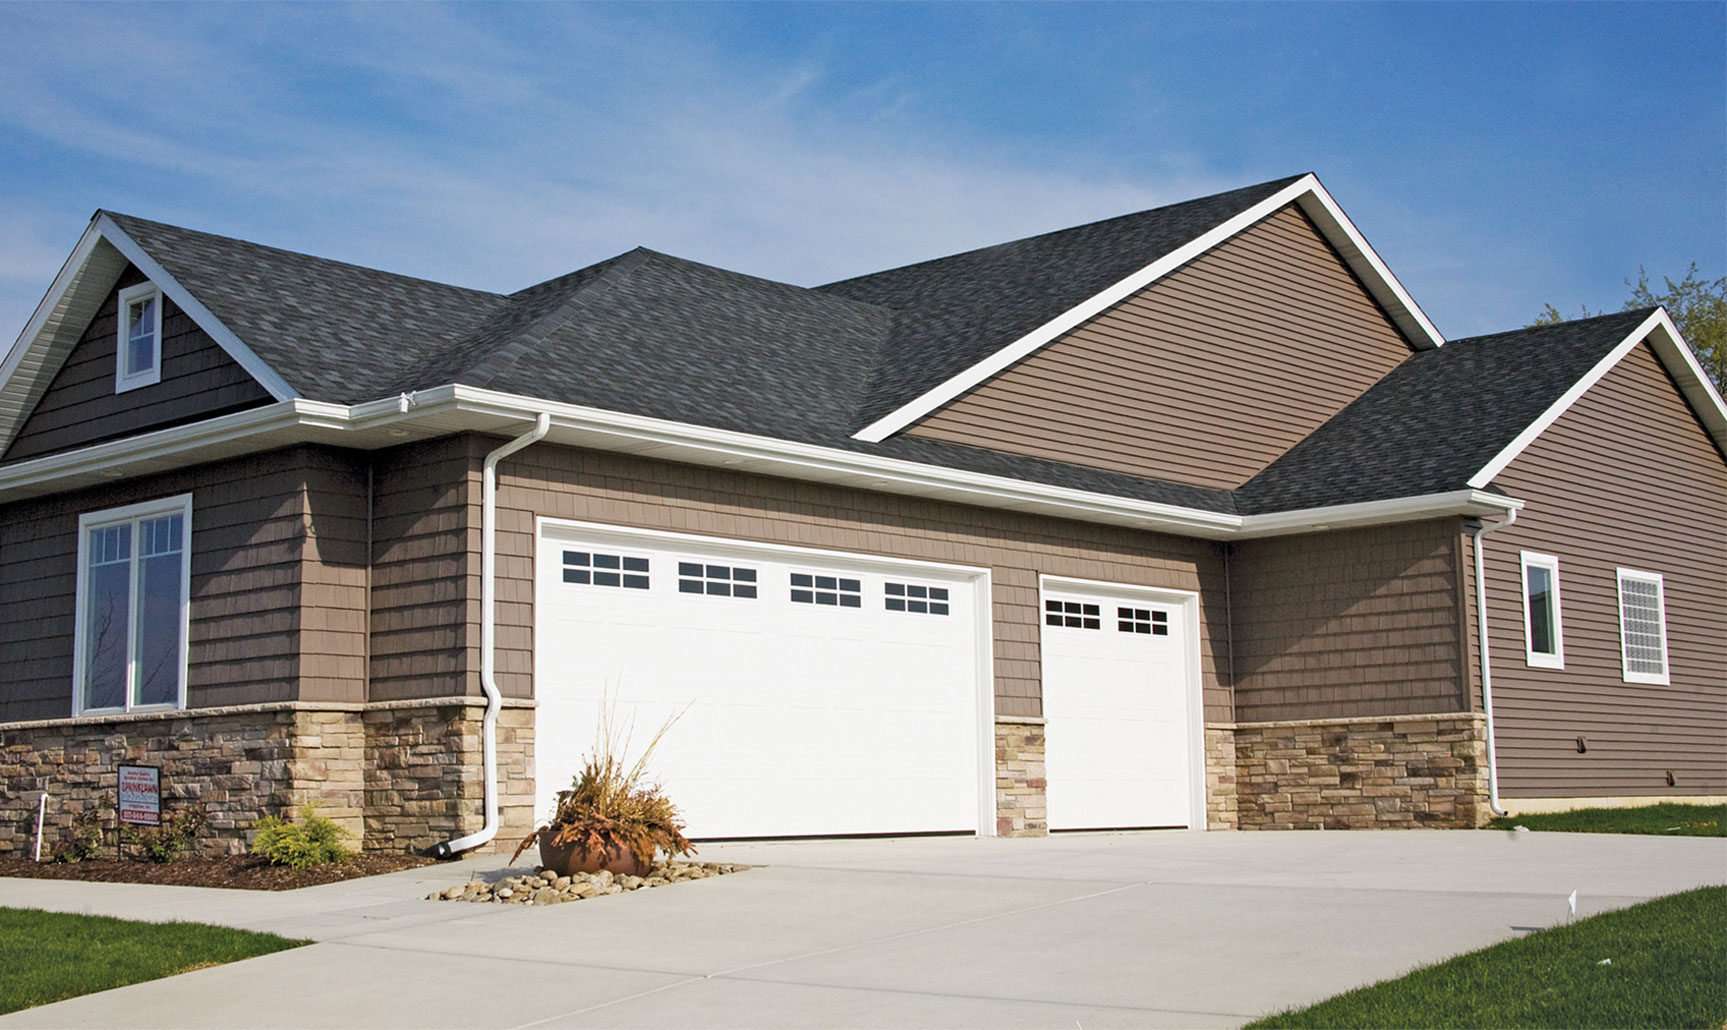 The Midwest Garage Door Company Advantage